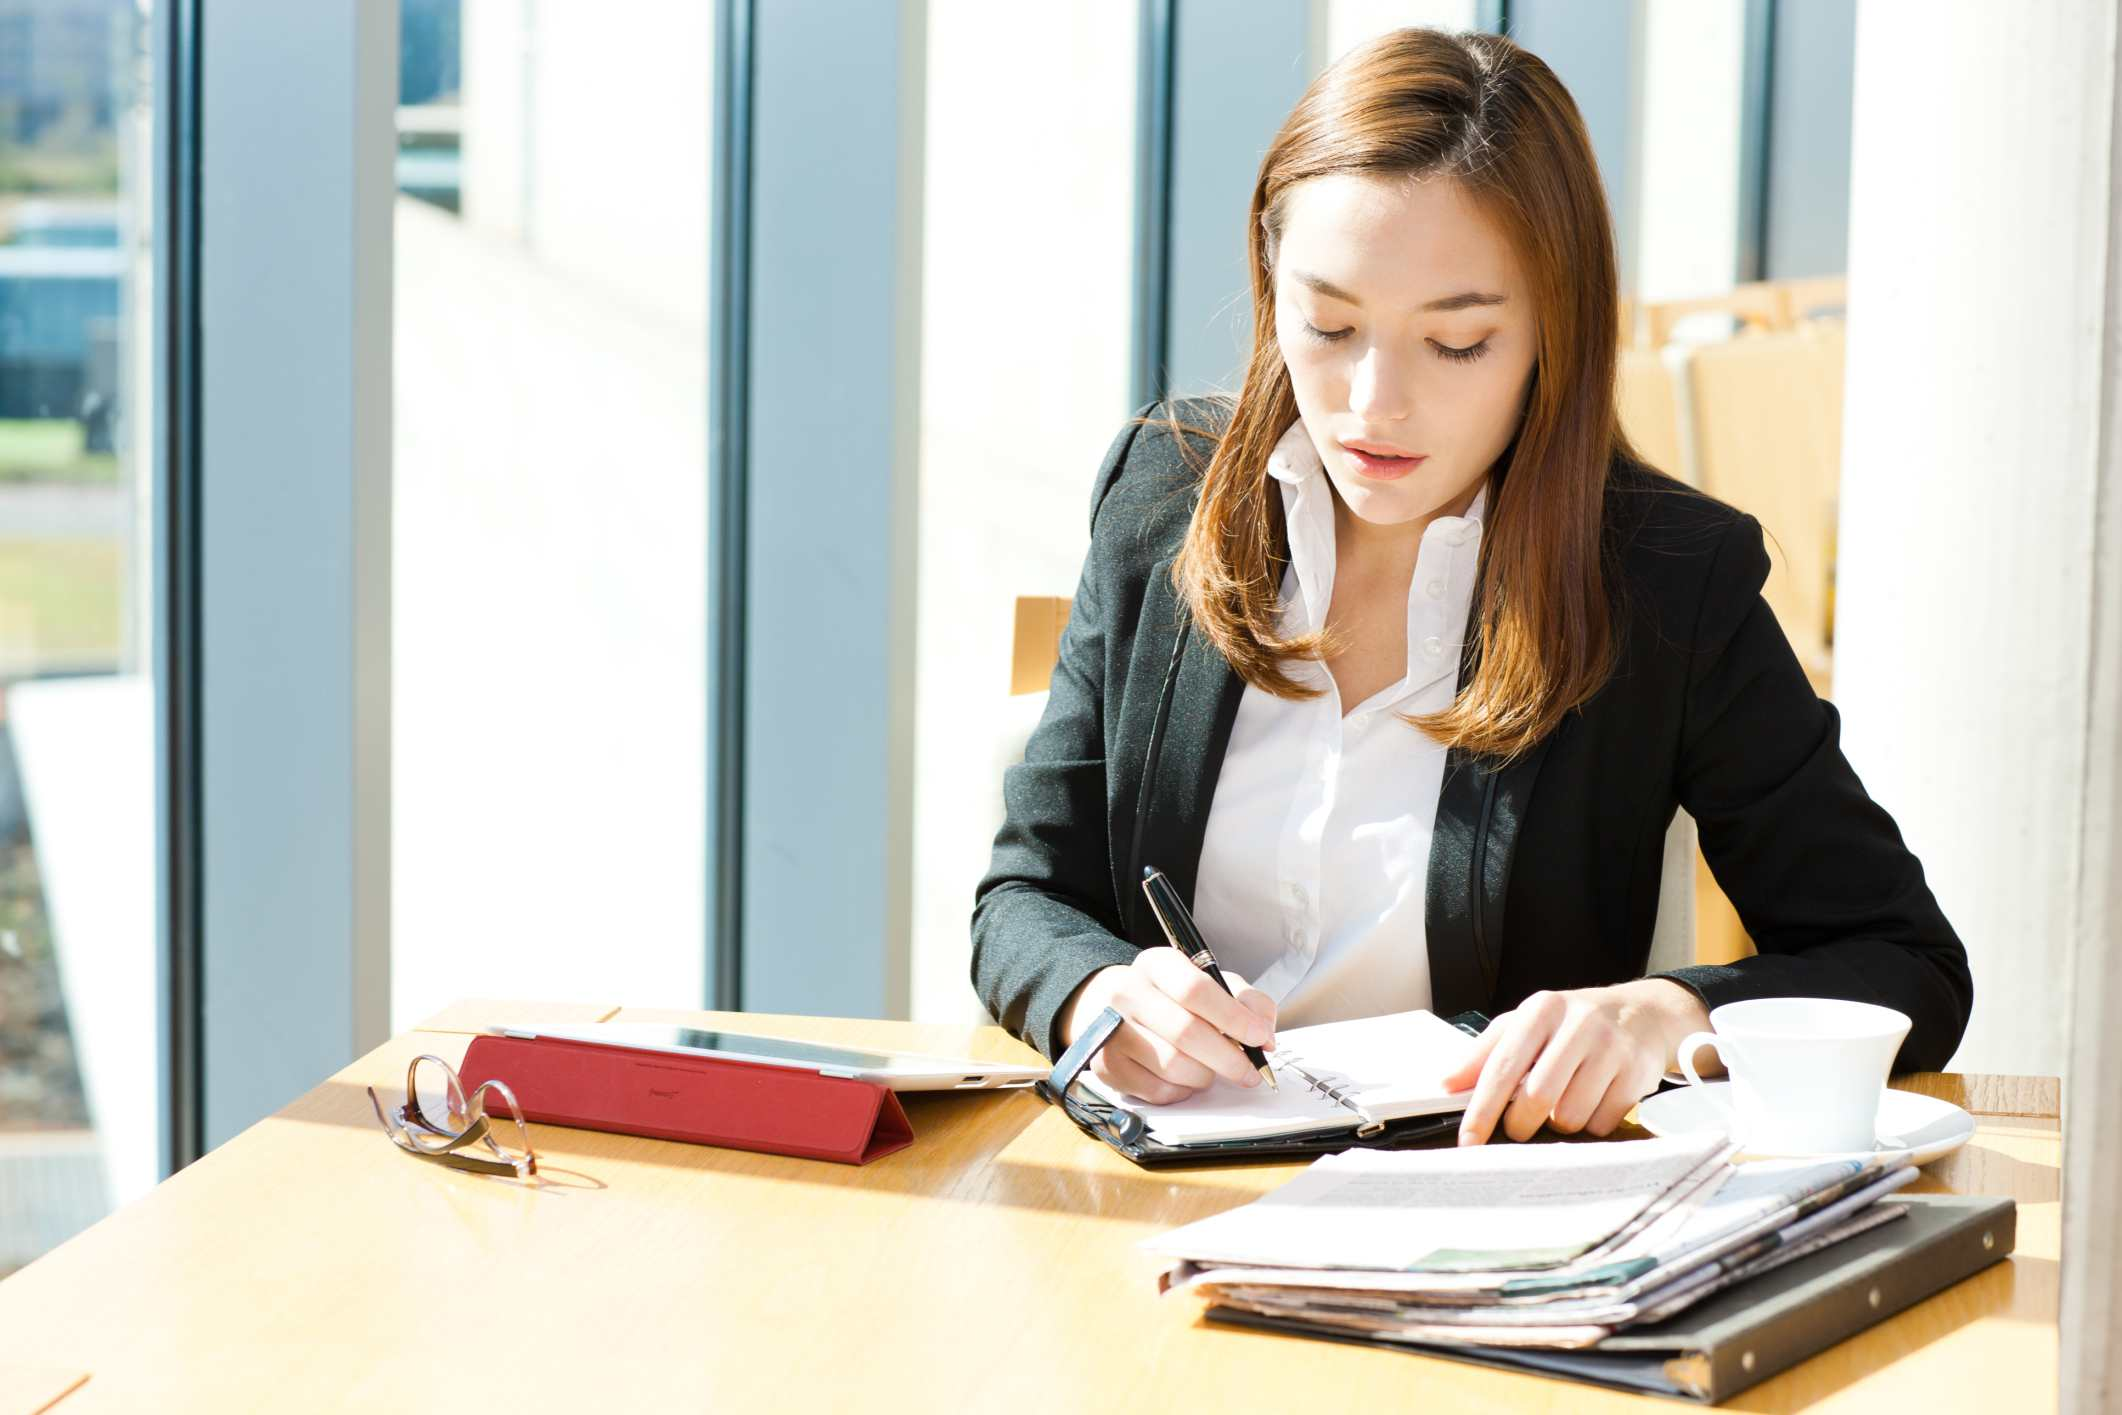 stressed woman writing in day planner